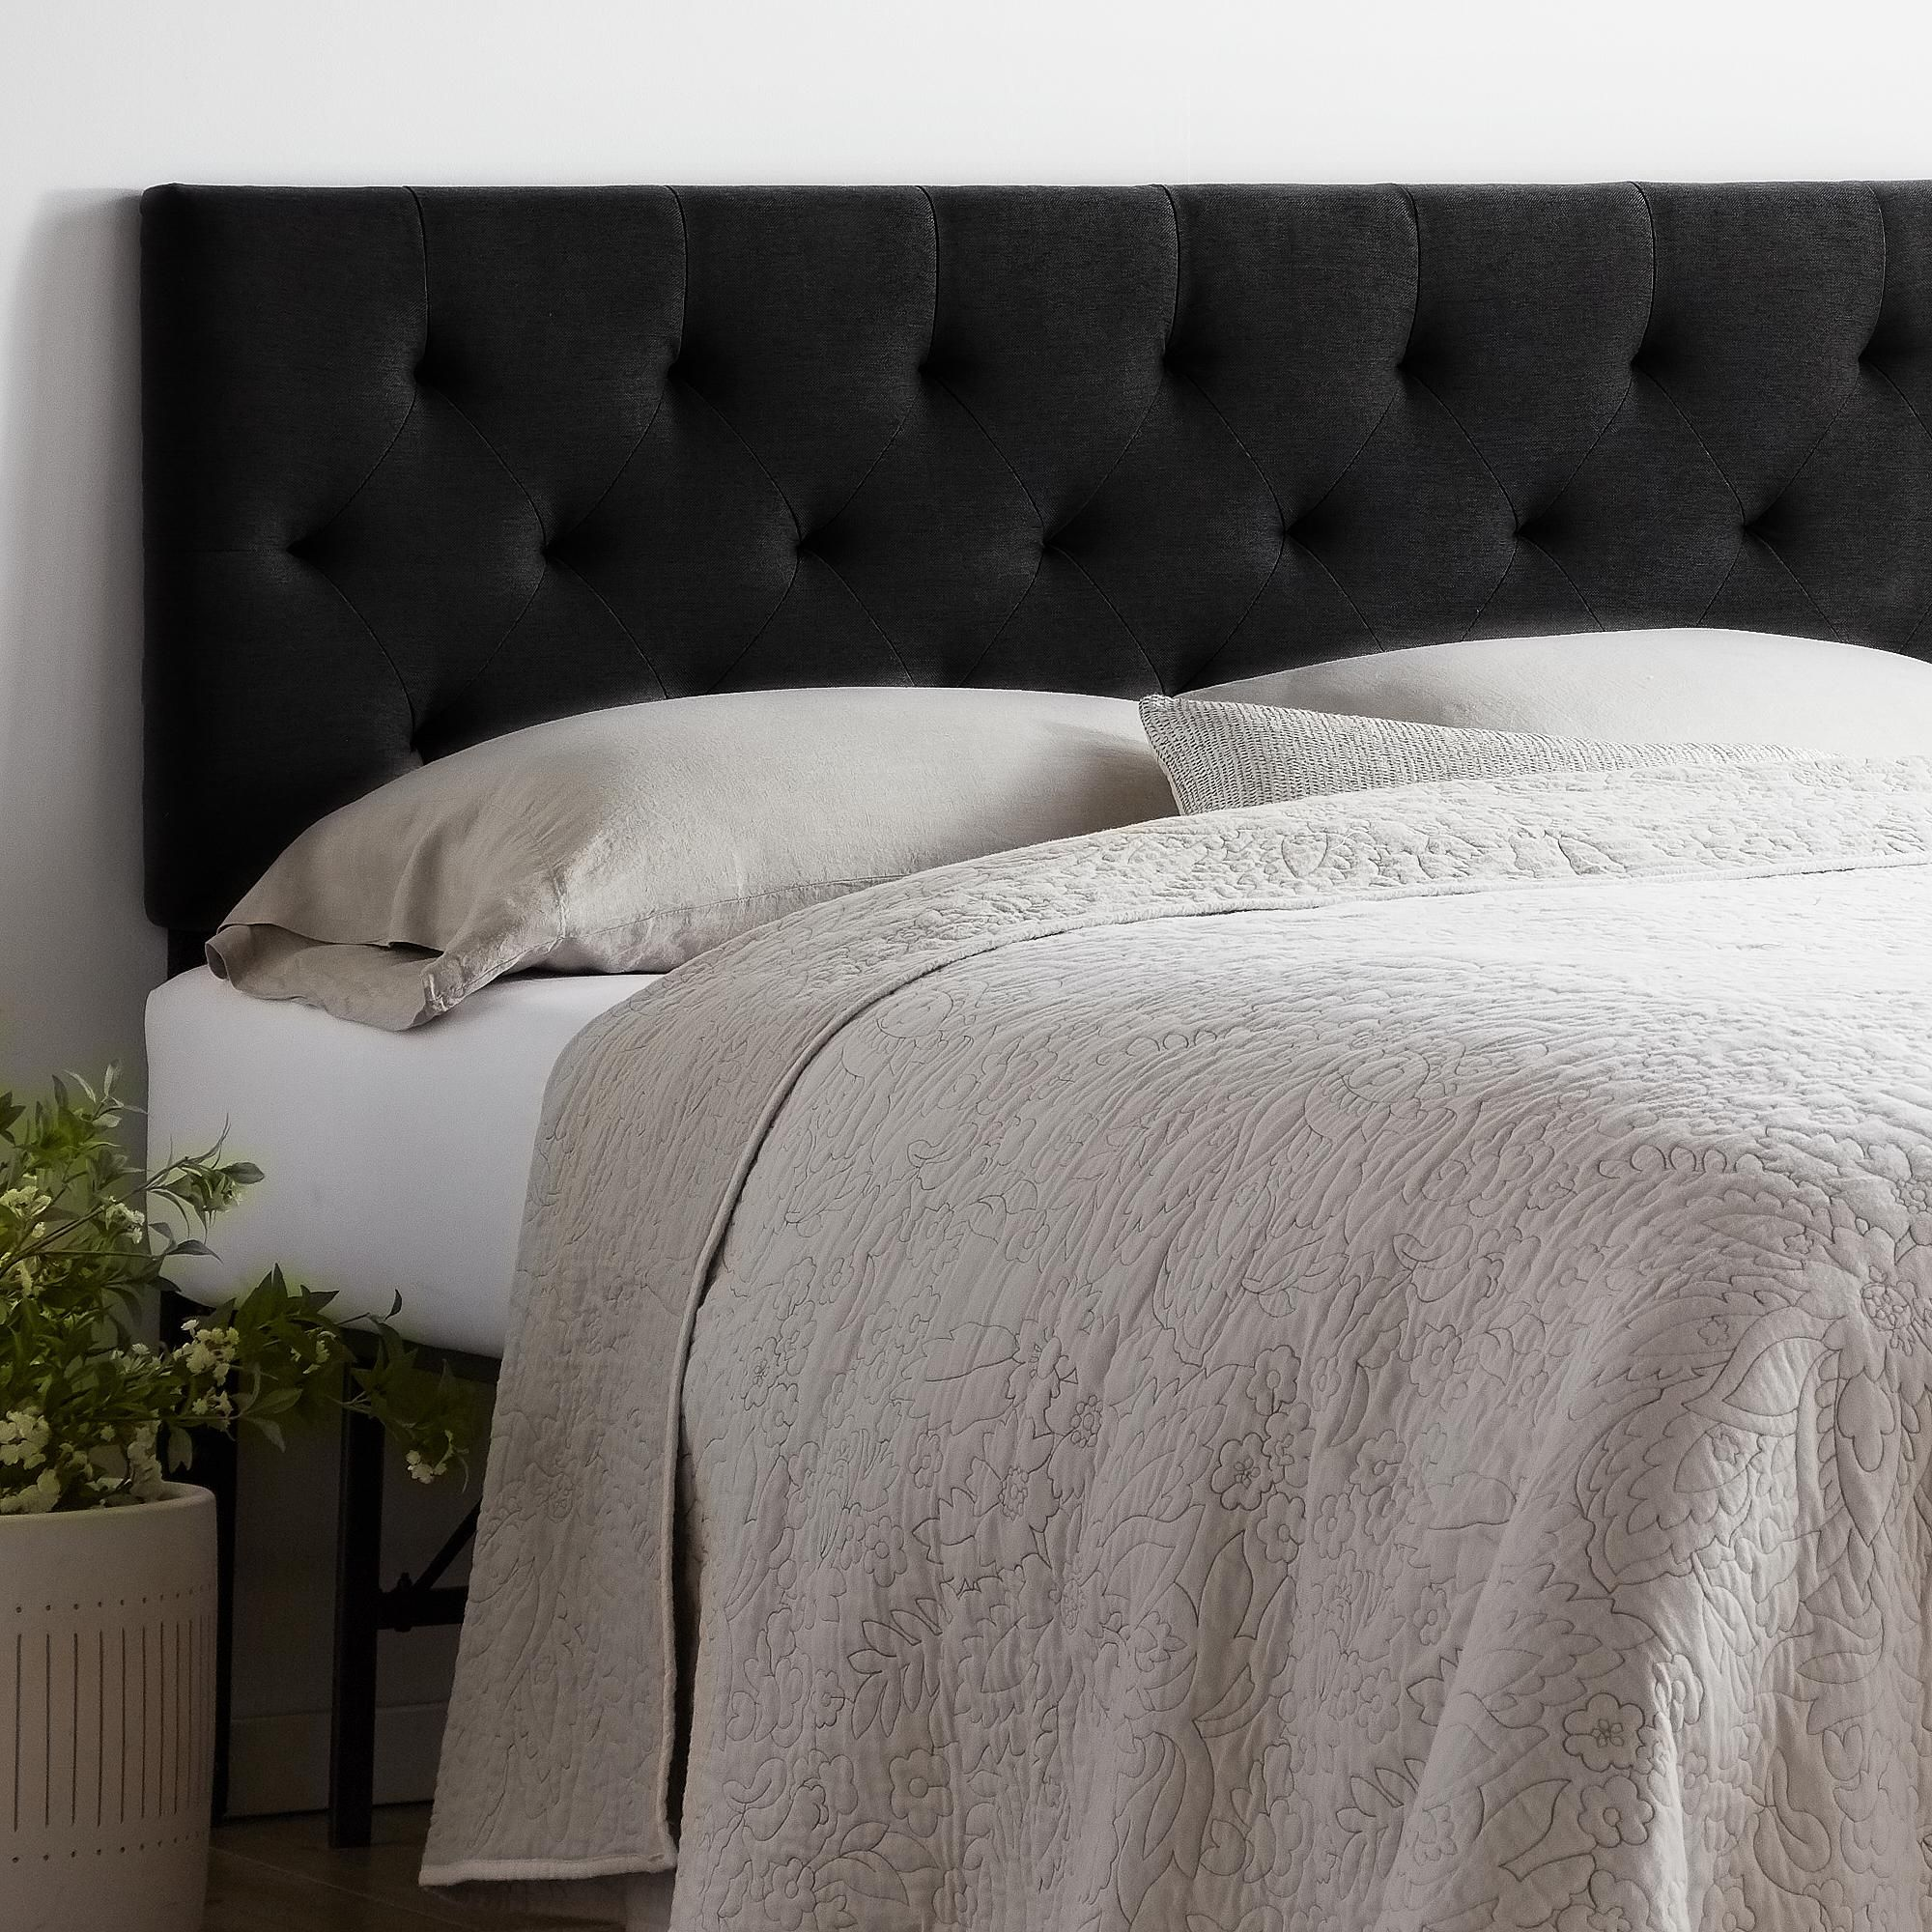 Rest Haven Upholstered Diamond Tufted Mid Rise Headboard Twin